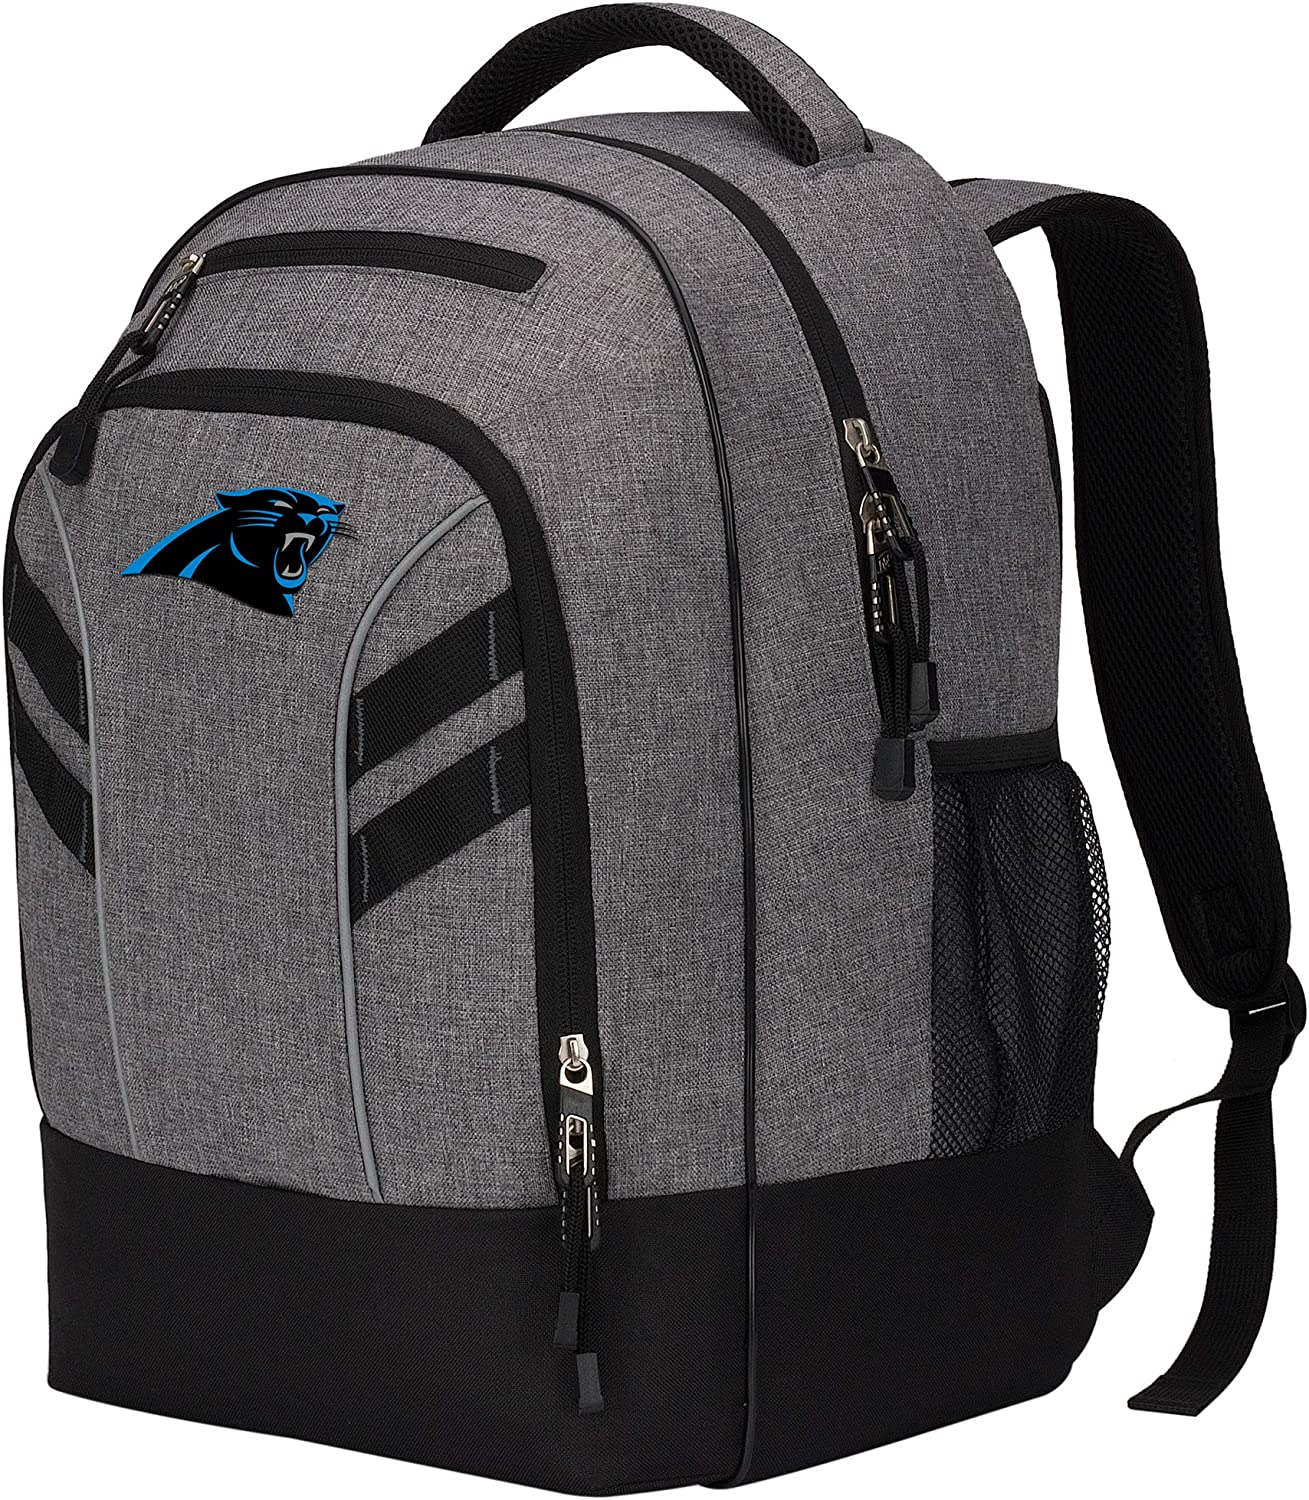 The Northwest Company Officially Licensed NFL Razor Backpack, Gray, 19 in